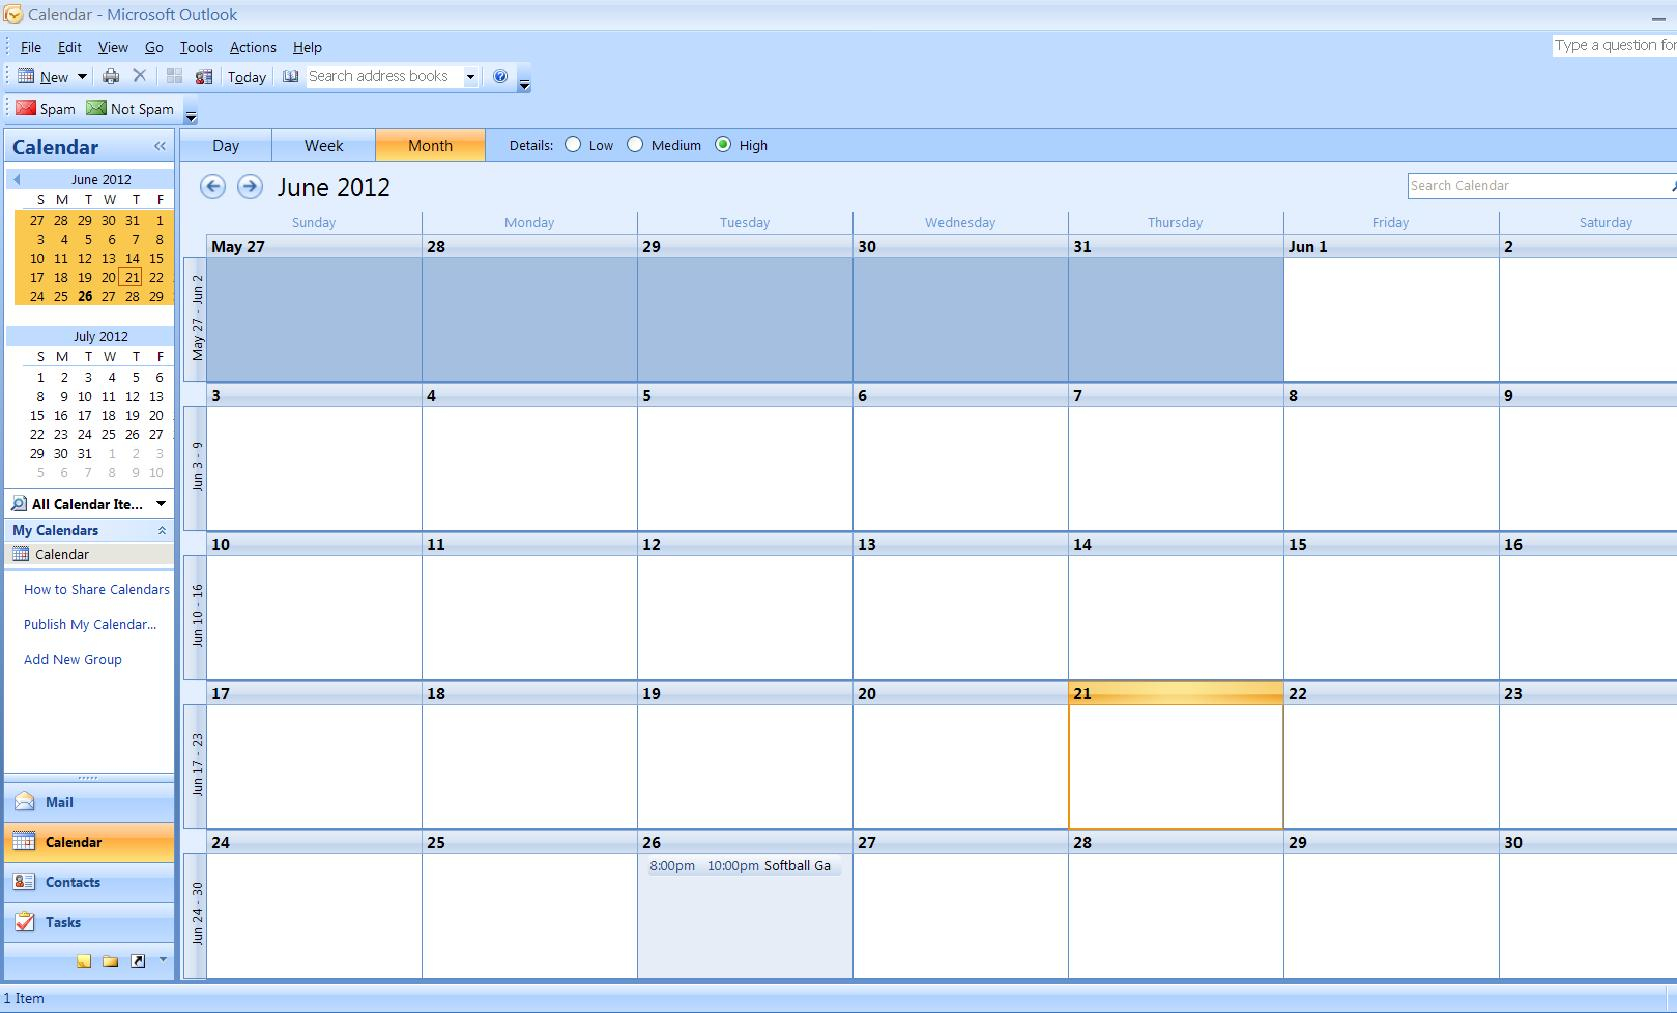 How To Import A Calendar From Excel To Outlook | Turbofuture Pertaining To Convert Spreadsheet To Calendar